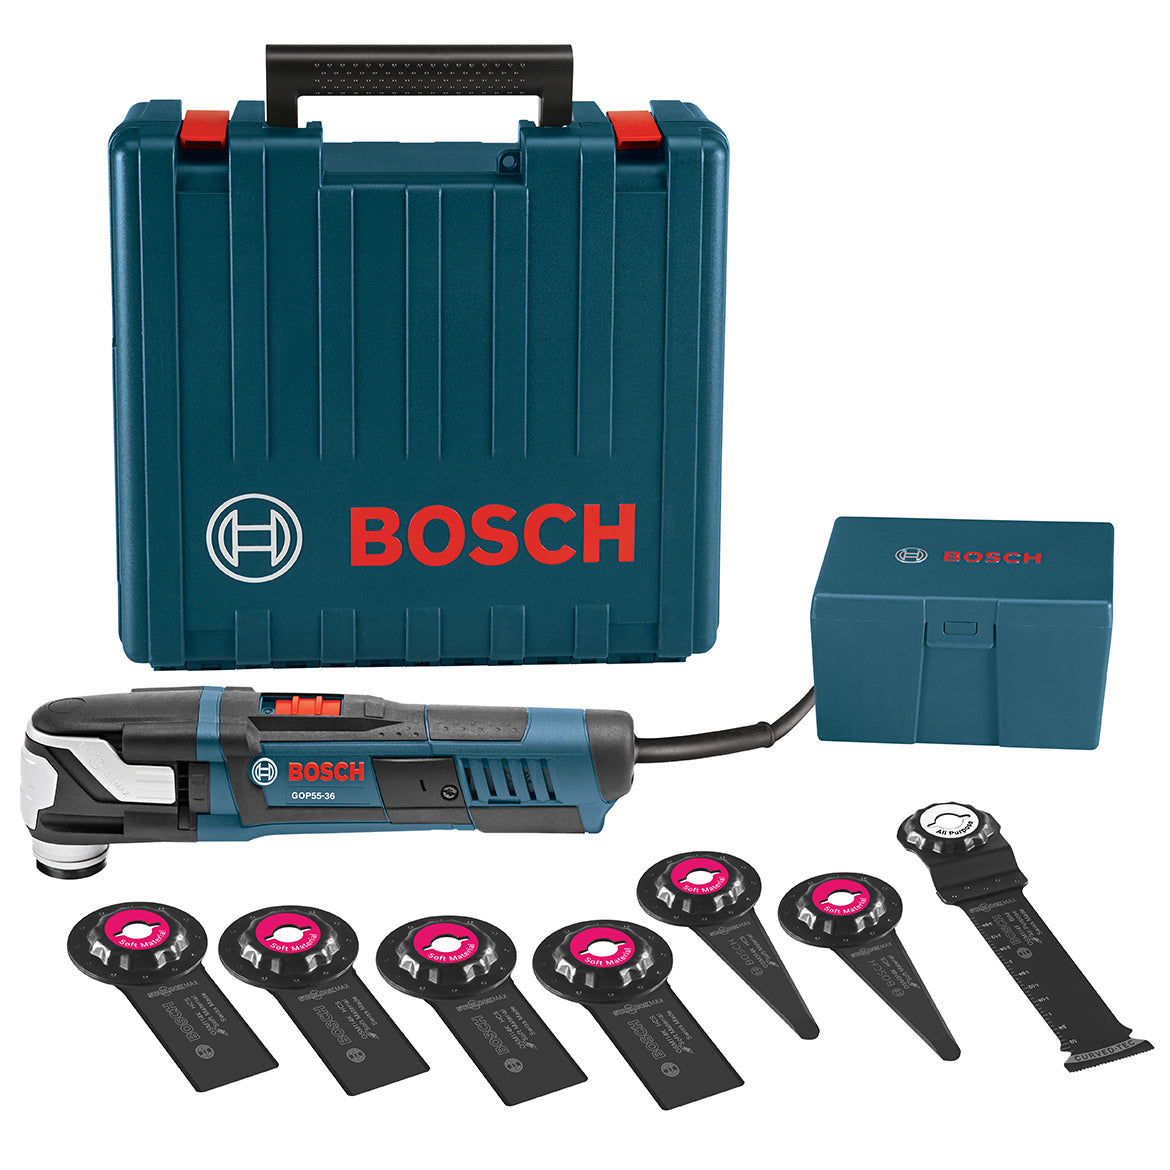 Bosch GOP55-36C1 5 5-Amp Aluminum Starlock Max Oscillating Multi-Tool Kit -  8pc